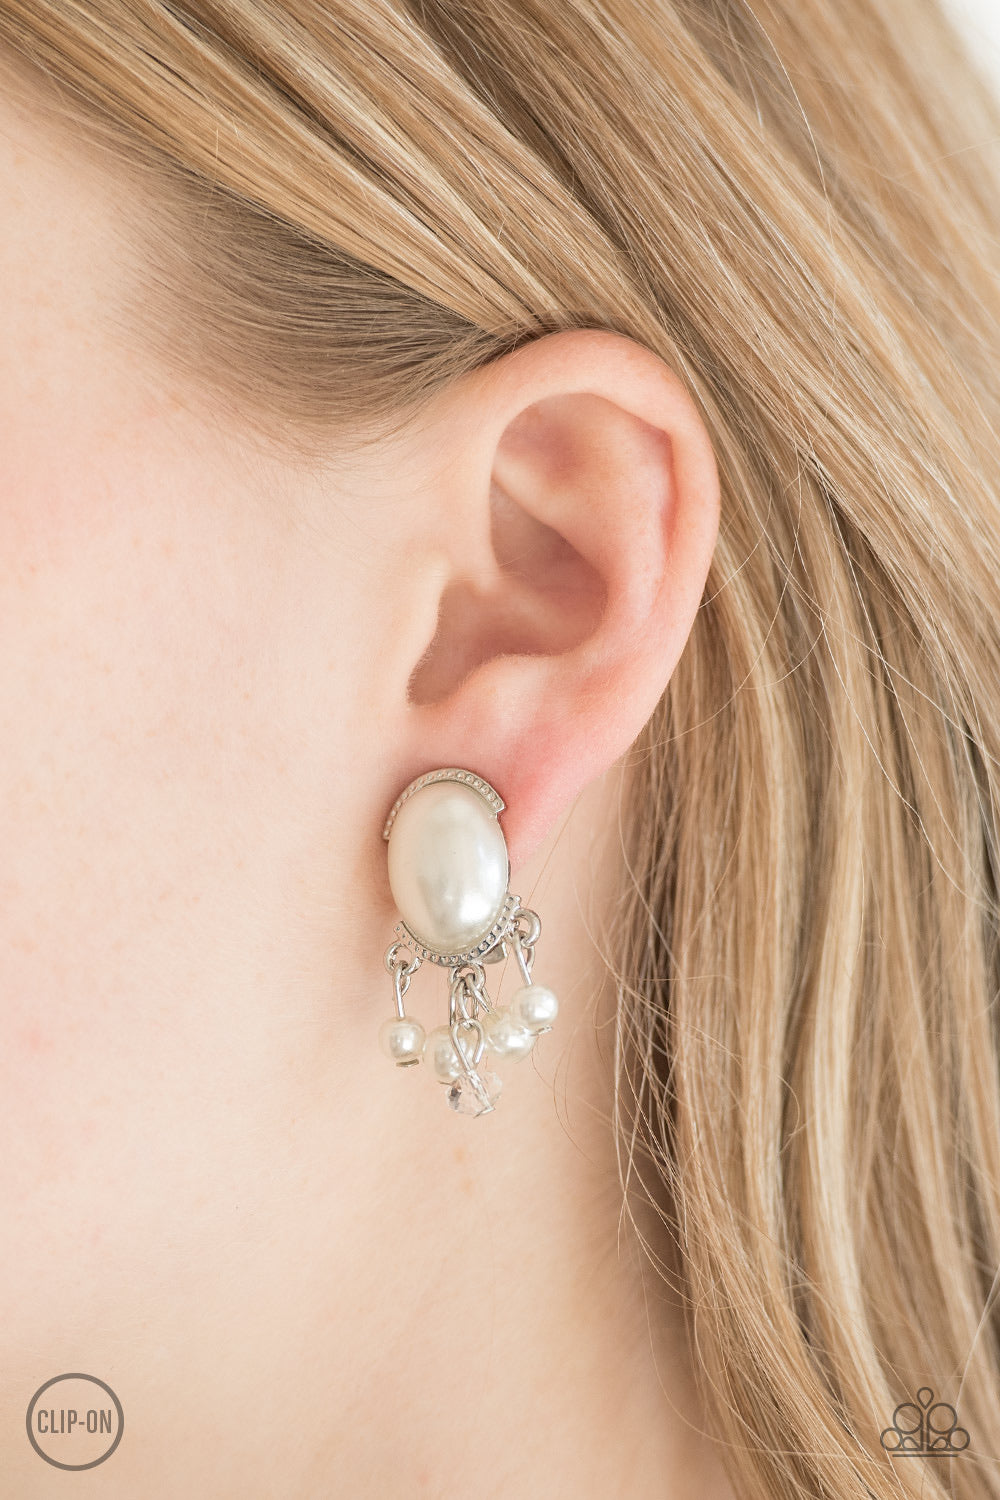 Classy Casablanca White Paparazzi Earrings - JewelTonez Jewelry